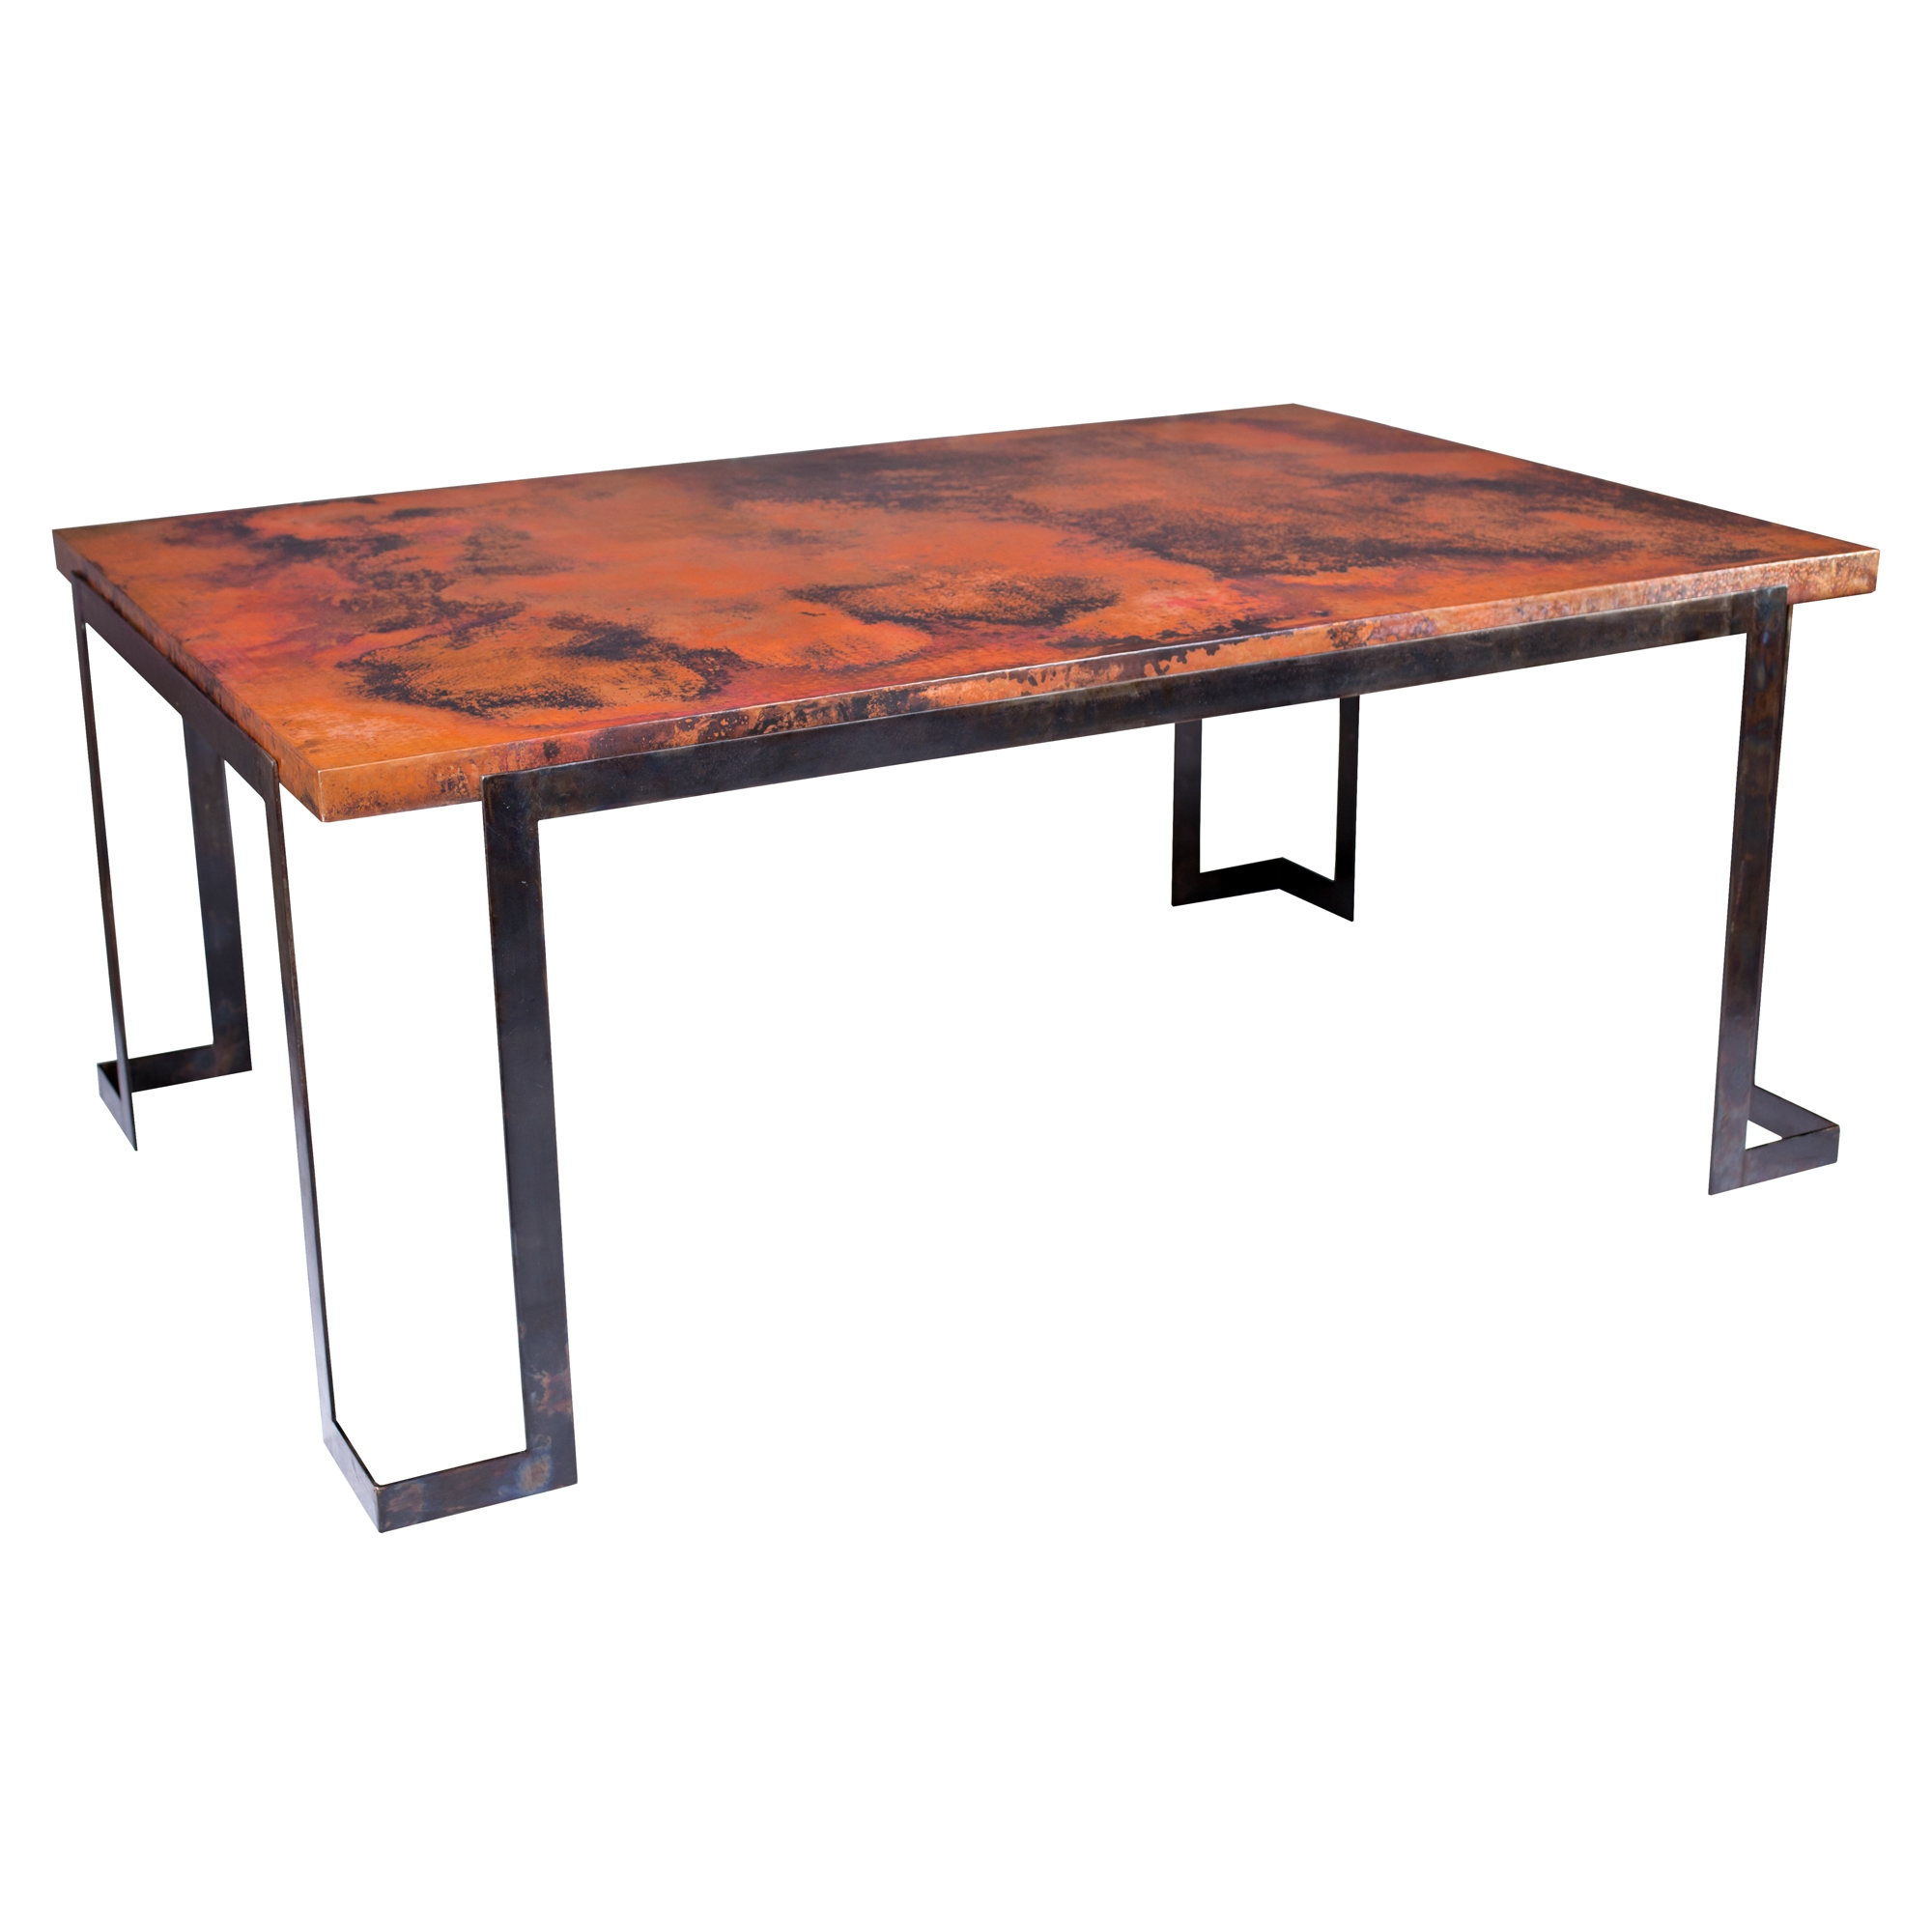 Steel strap rectangle dining table with hammered copper top for Rectangle dining table